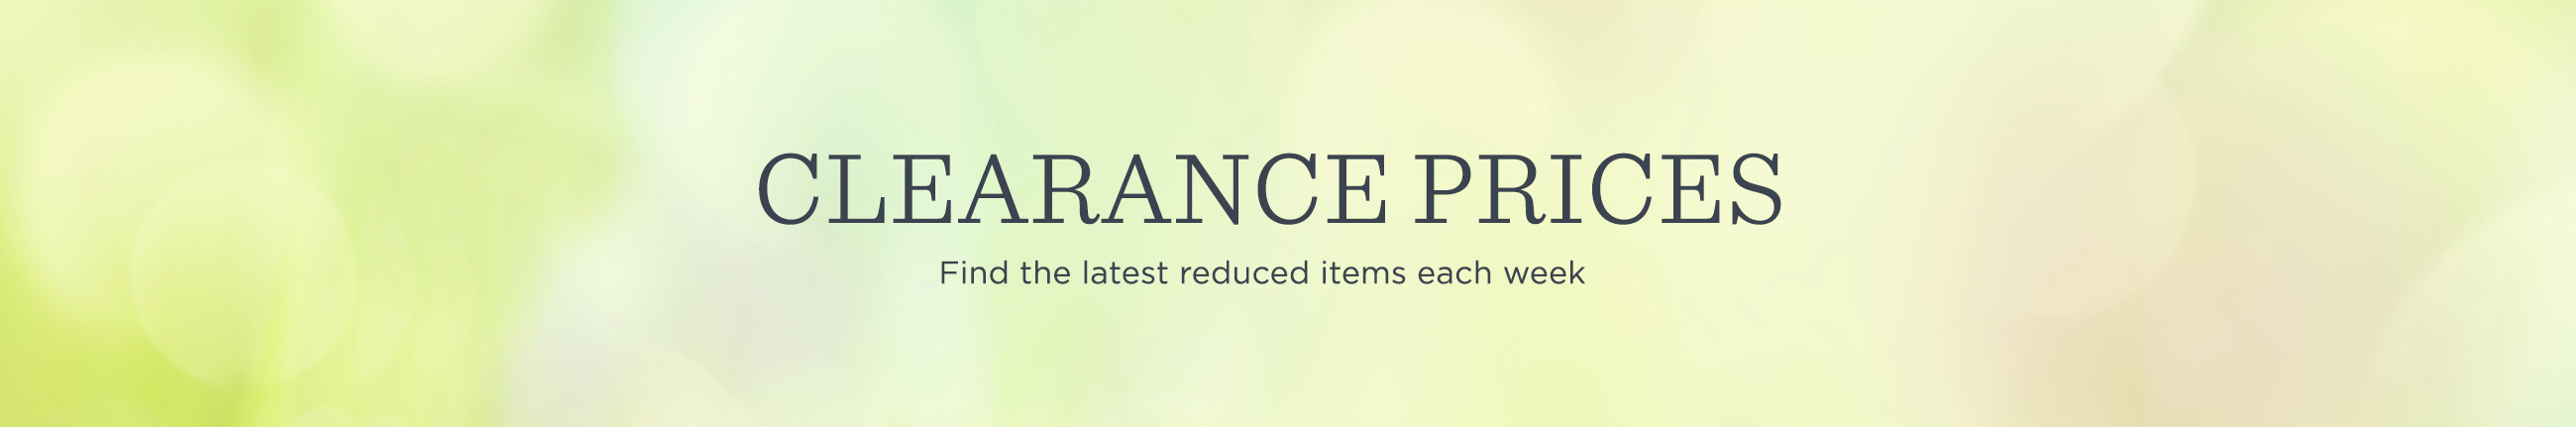 Clearance Prices  Find the latest reduced items each week